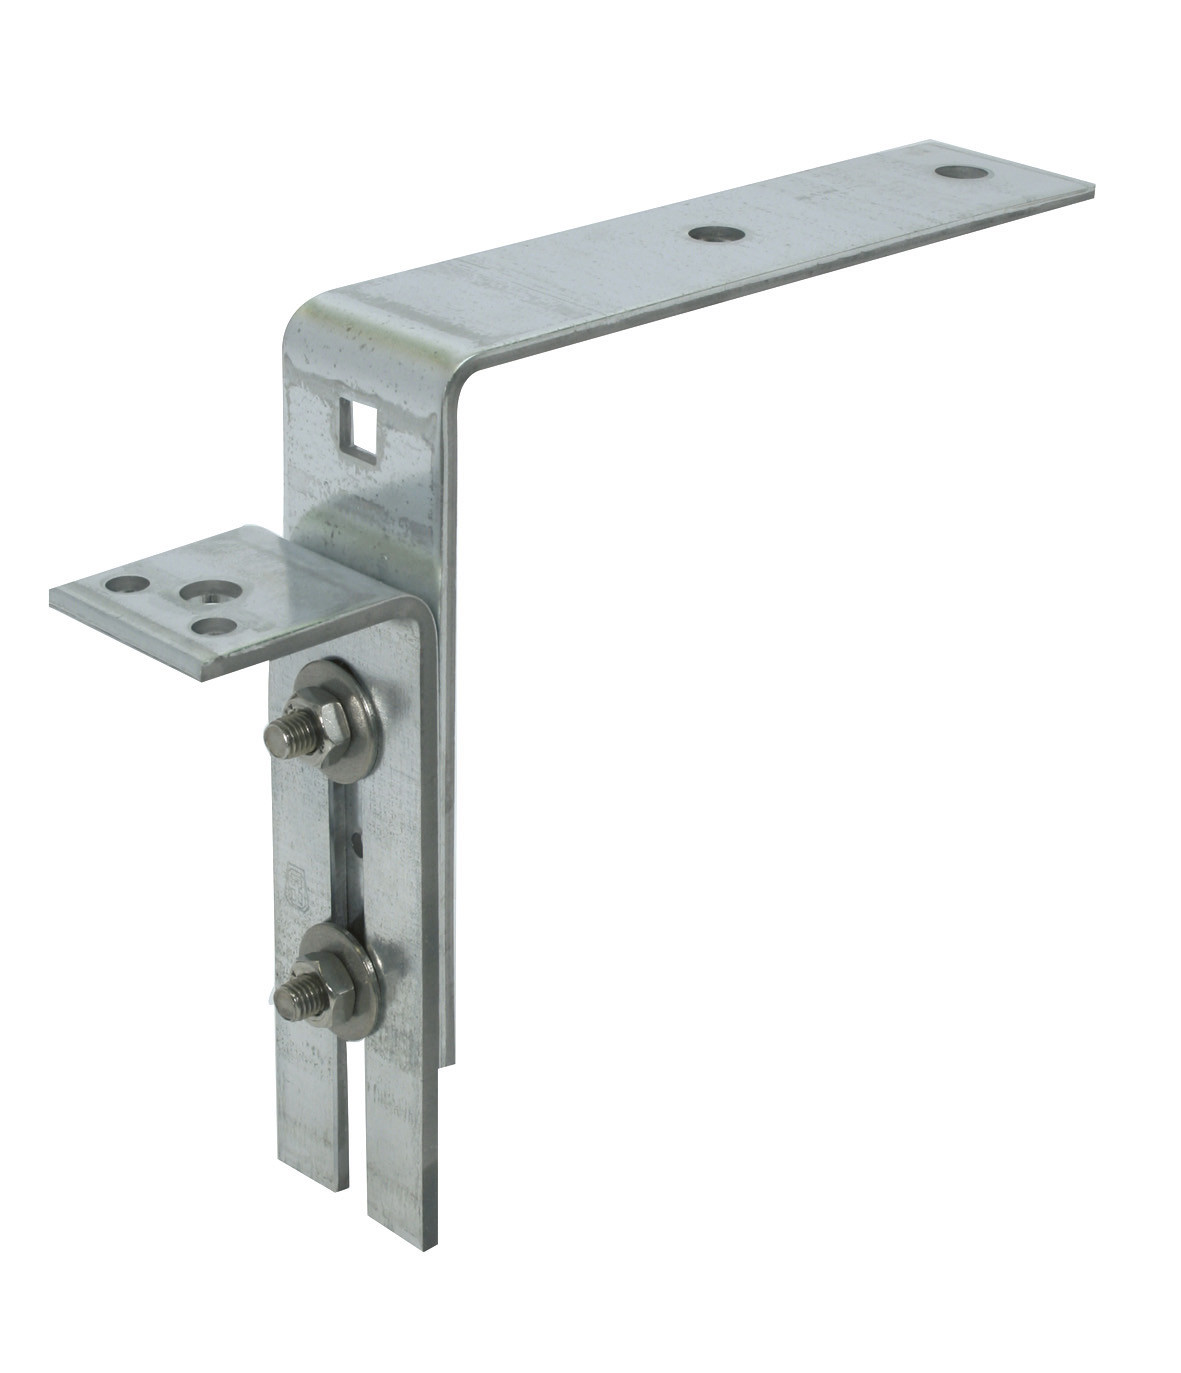 Adjustable frame bracket type D 65x180/175 60x6/60x5 SV